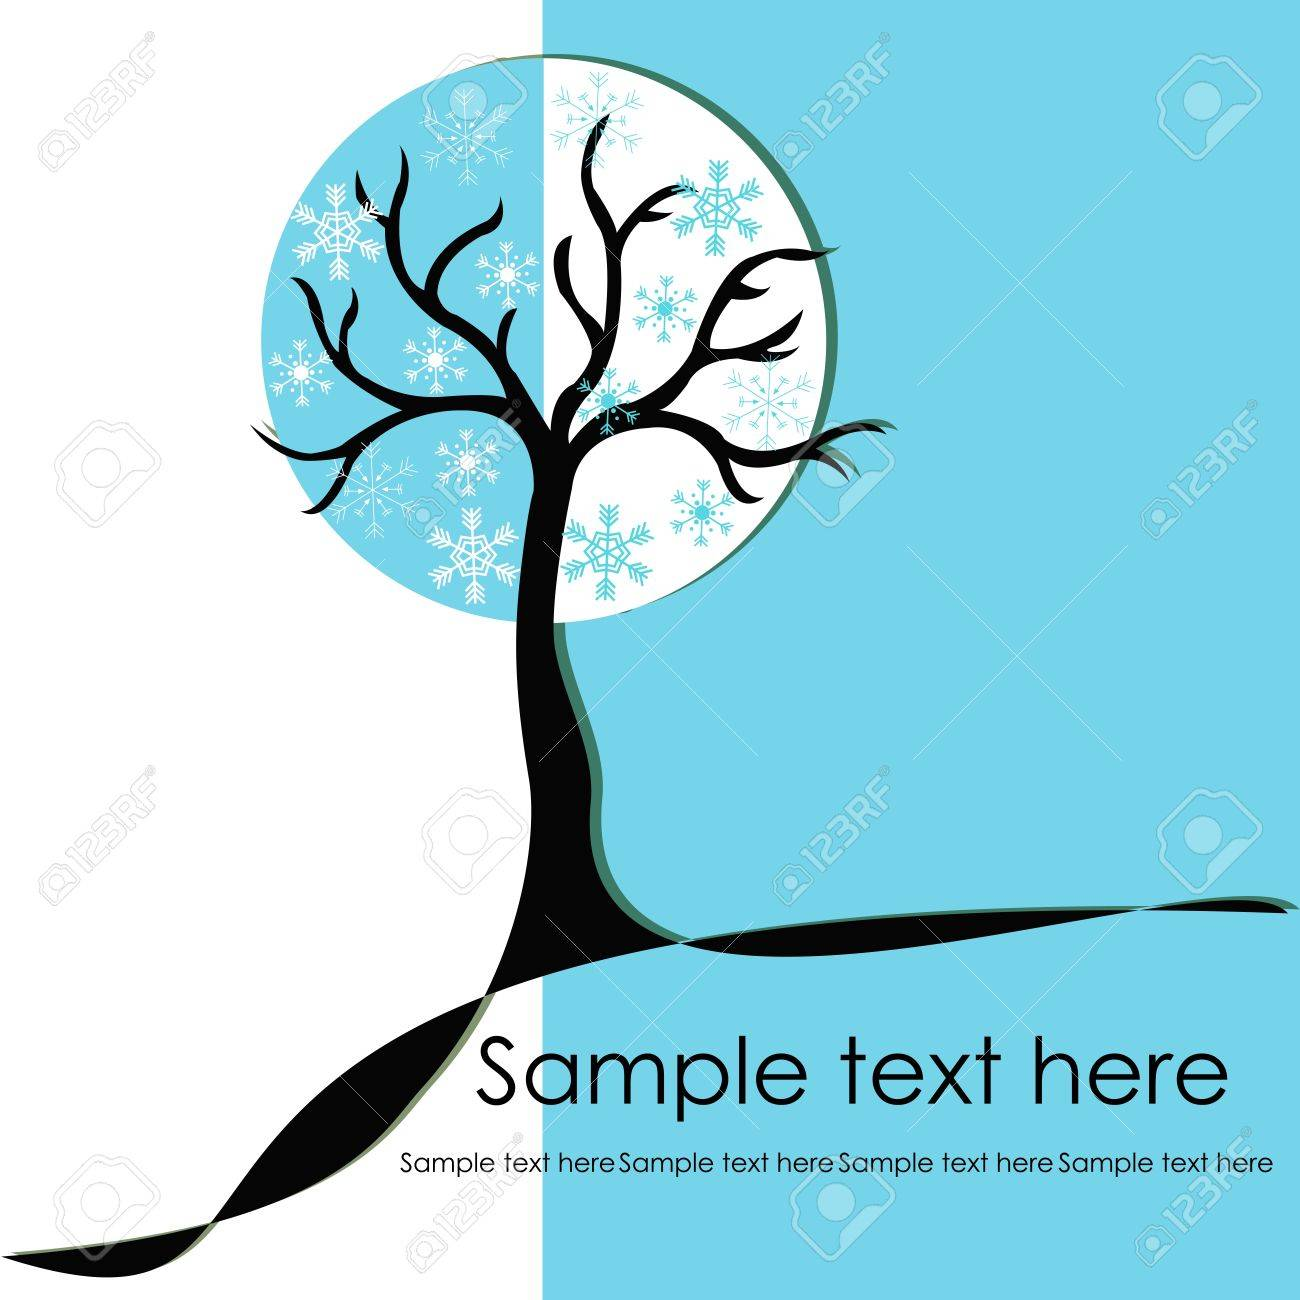 Abstract winter tree with snowflakes Stock Vector - 15314963